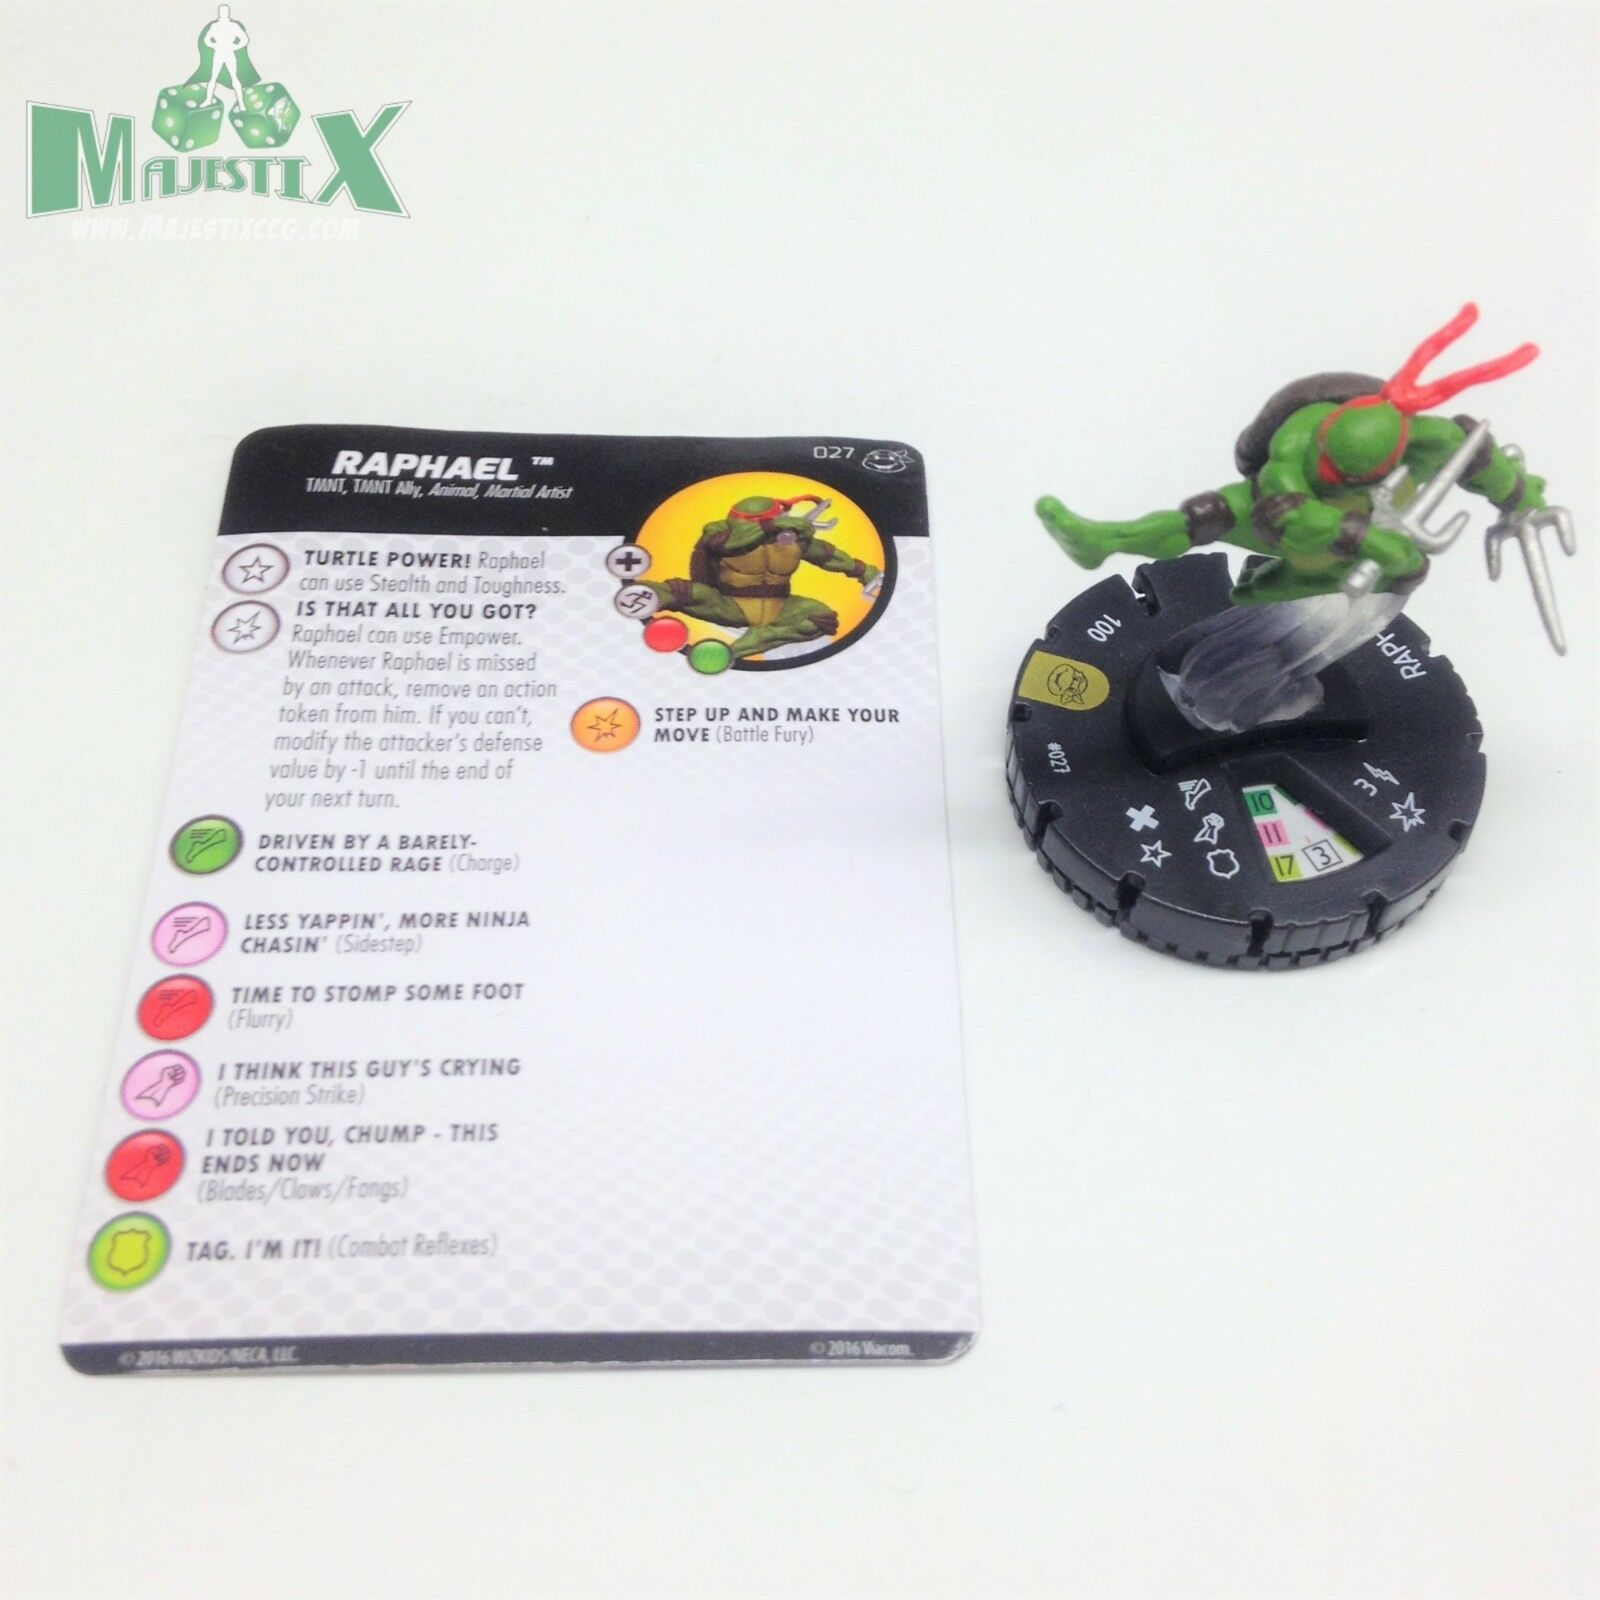 Heroclix Teenage Mutant Ninja Turtles 2 set Raphael Super Super Super Rare w card  9421f2